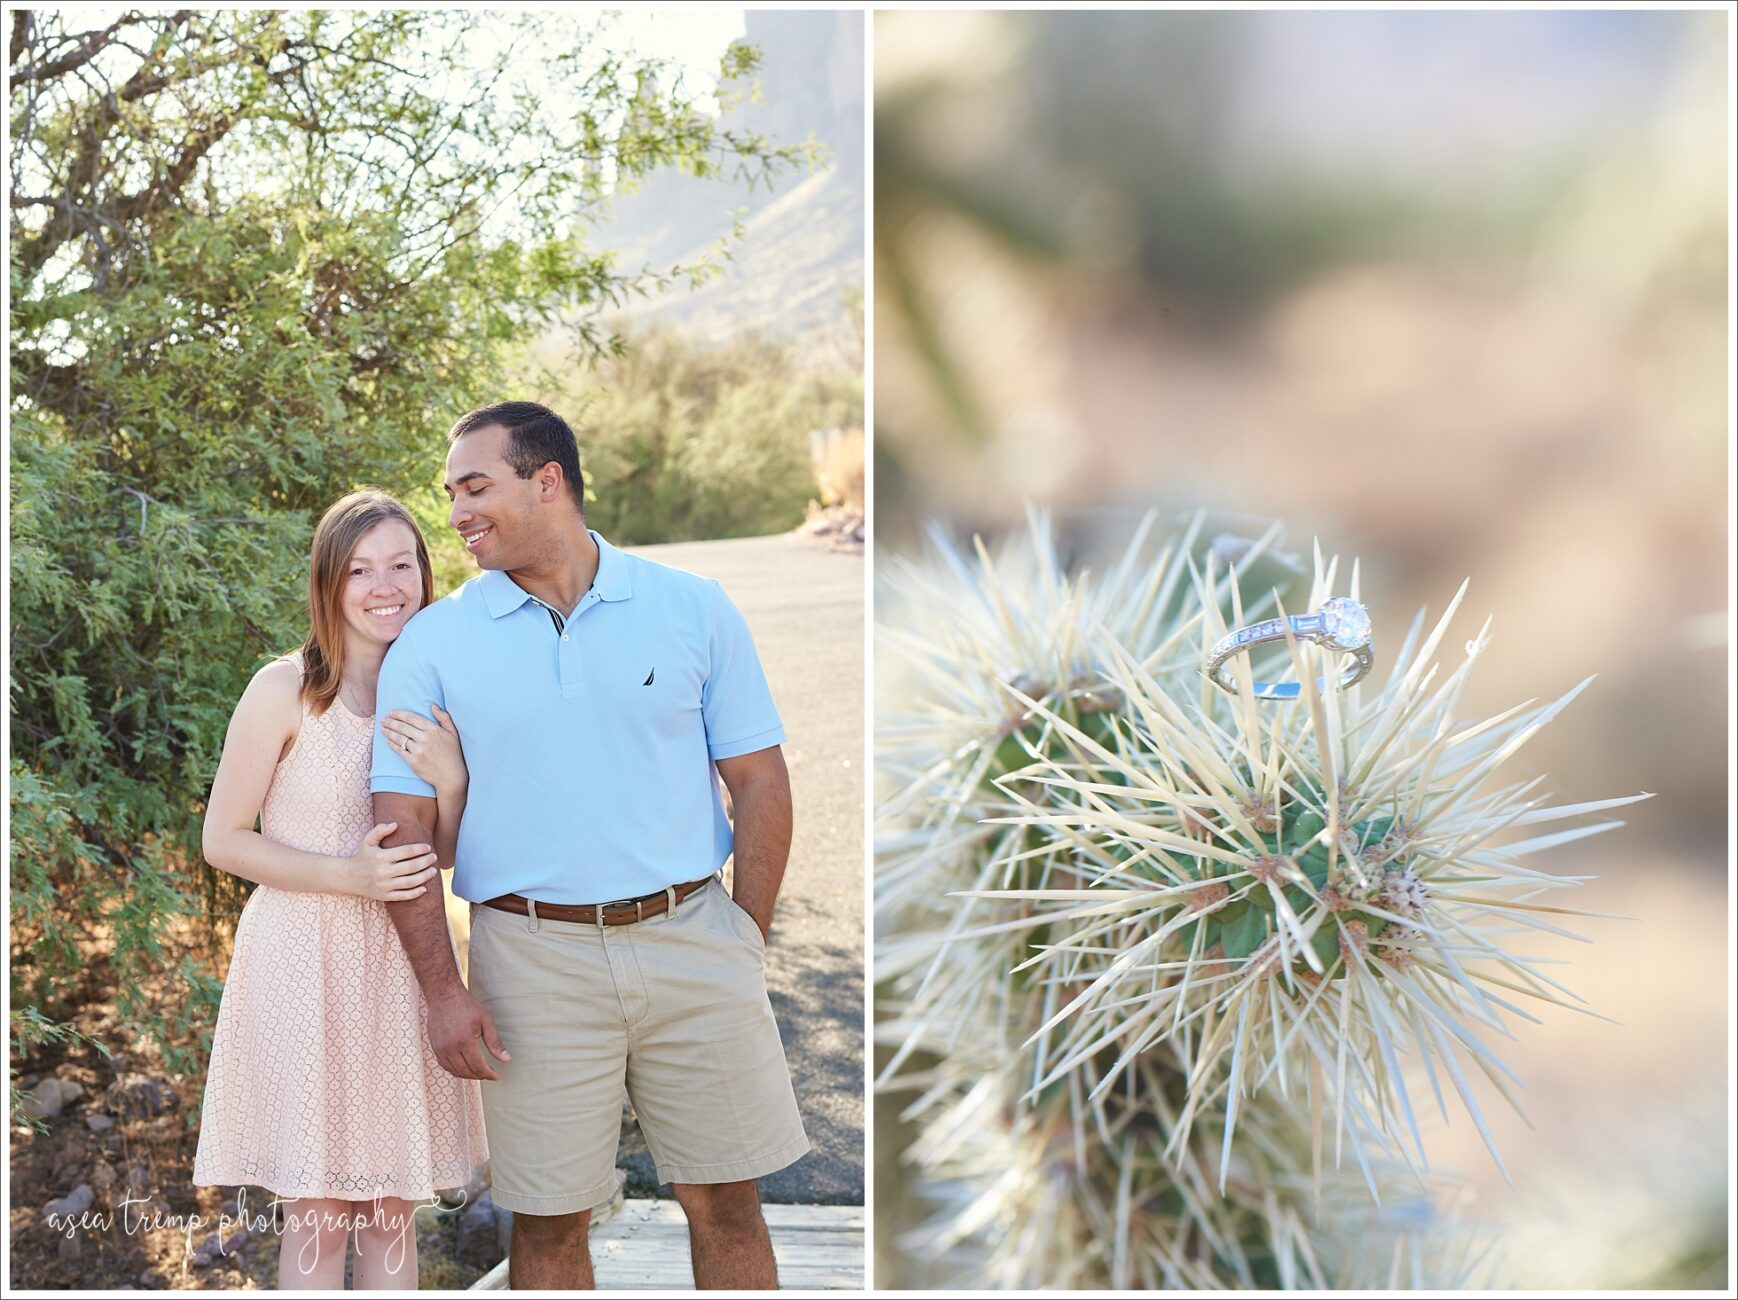 Superstition Monuntains Lost Dutchman Engagement 070417 BR Asea Tremp Photography_STOMP